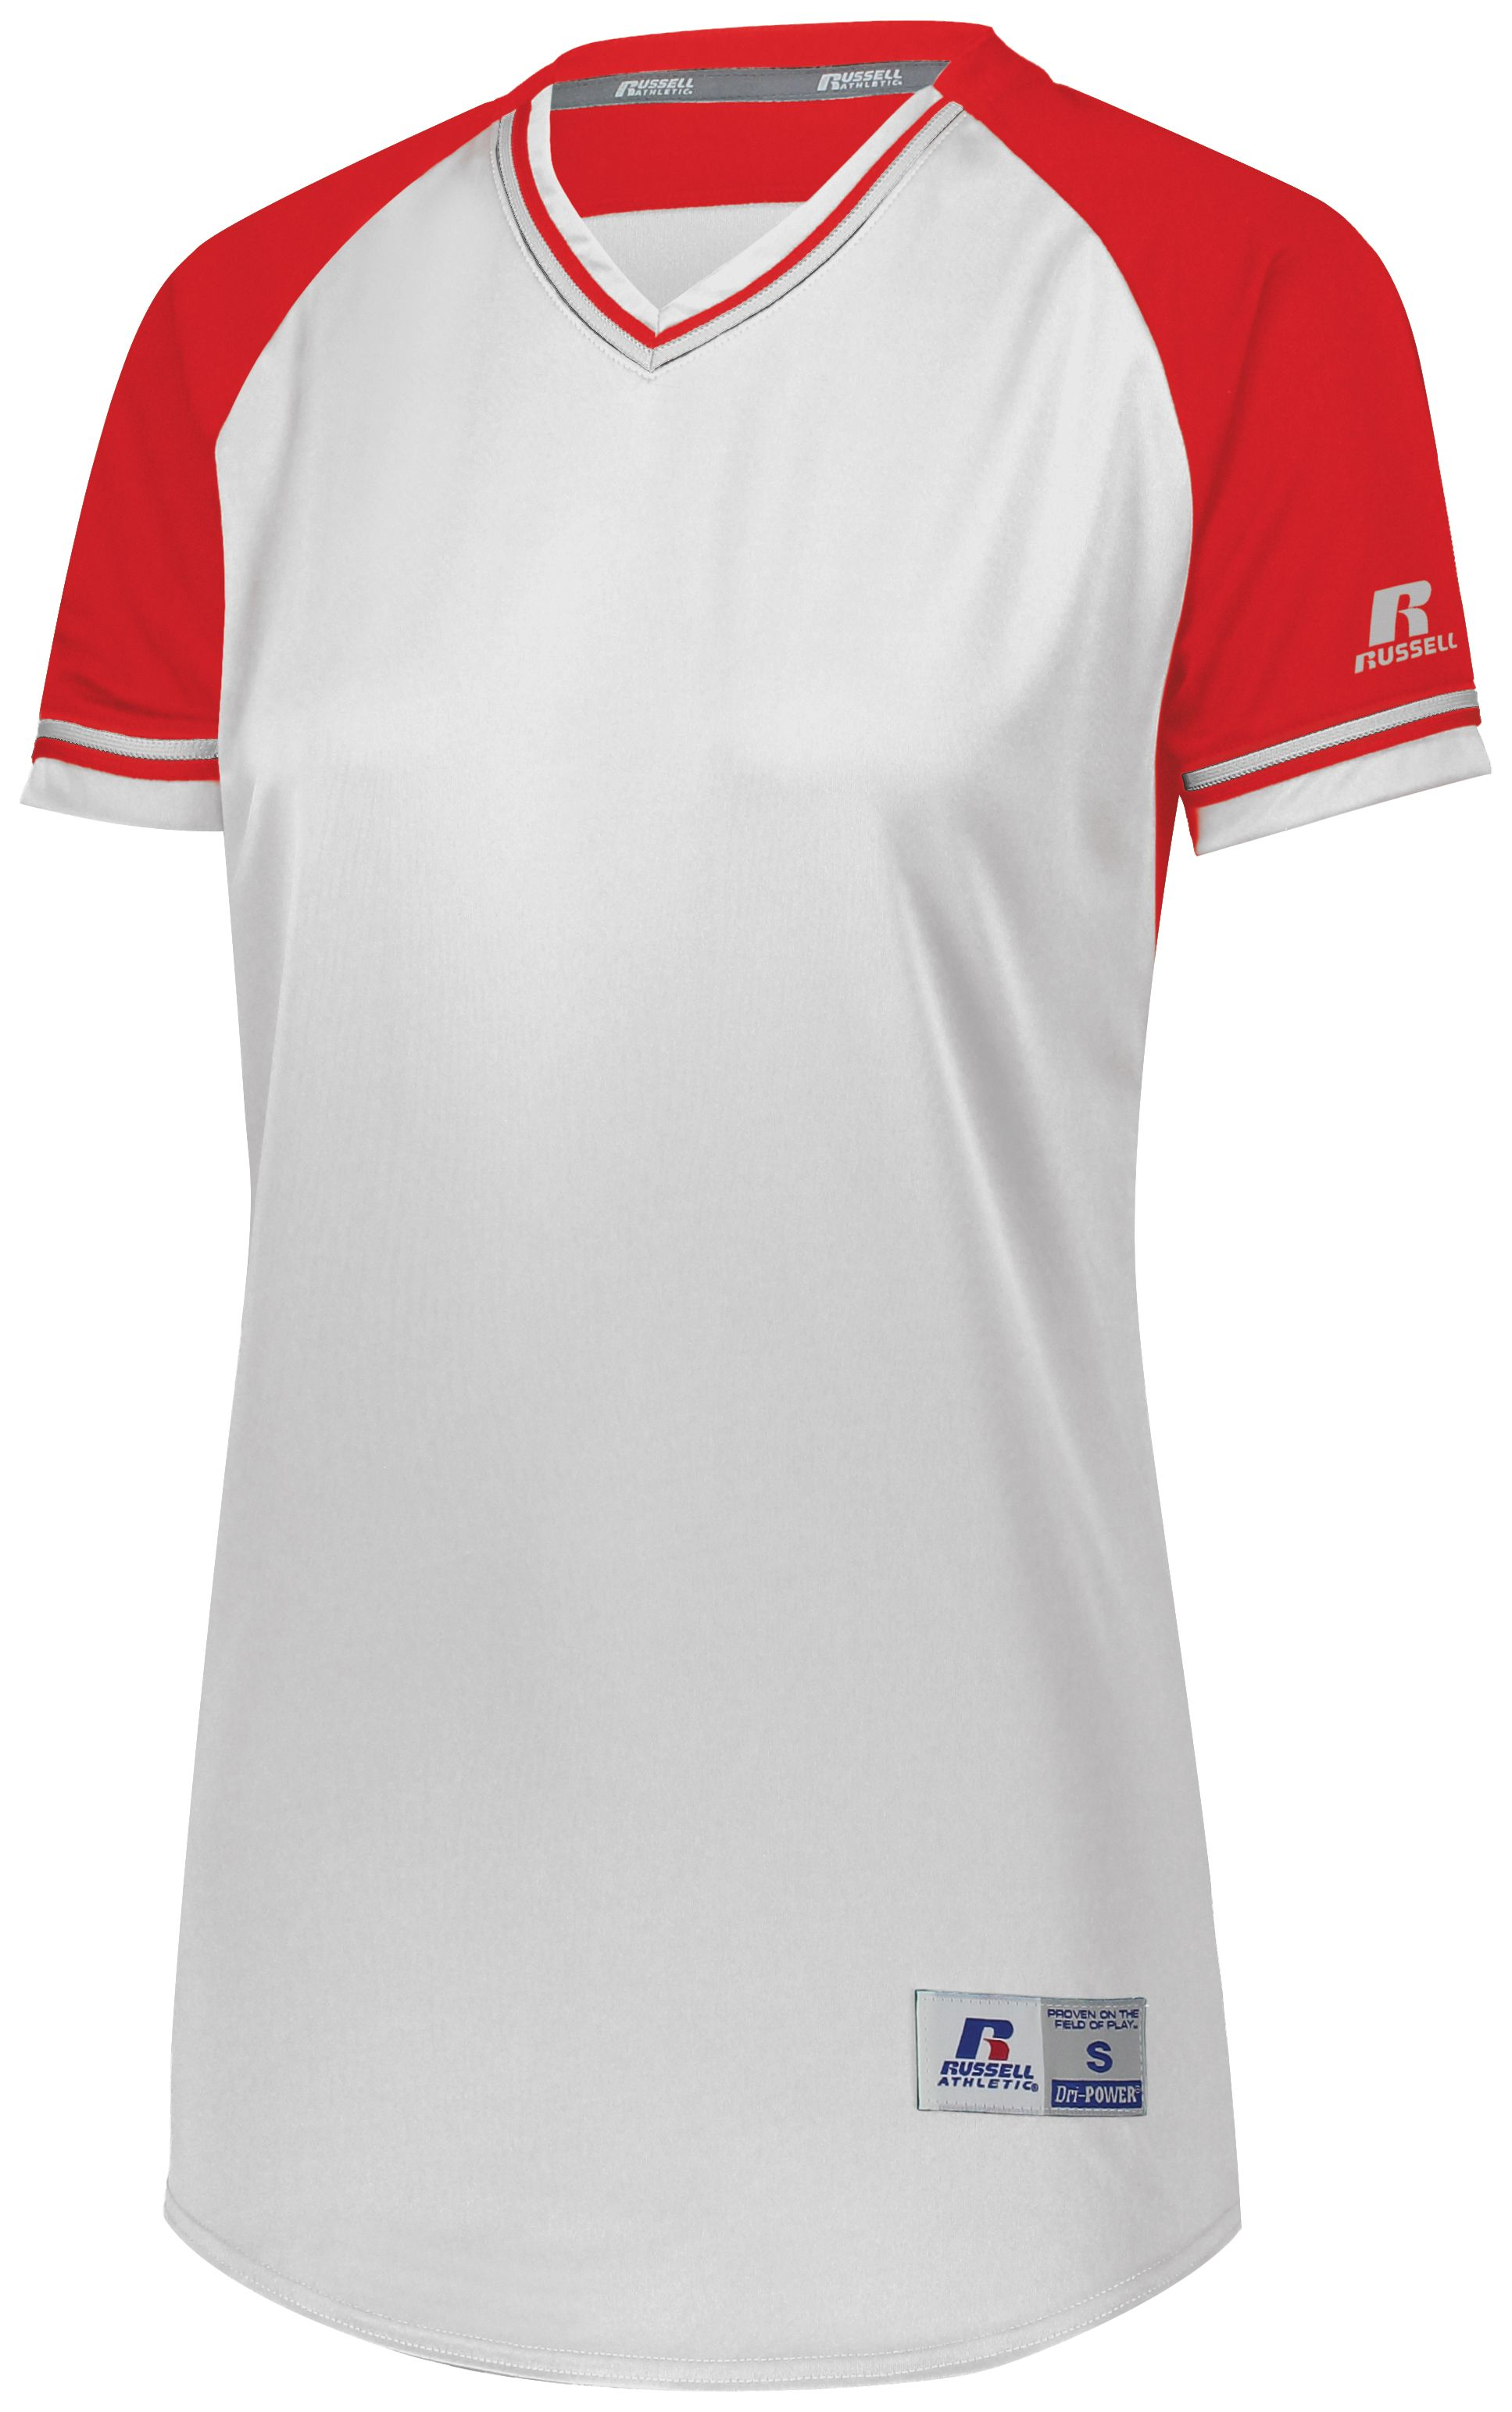 Ladies Classic V-Neck Jersey - White/true Red/white